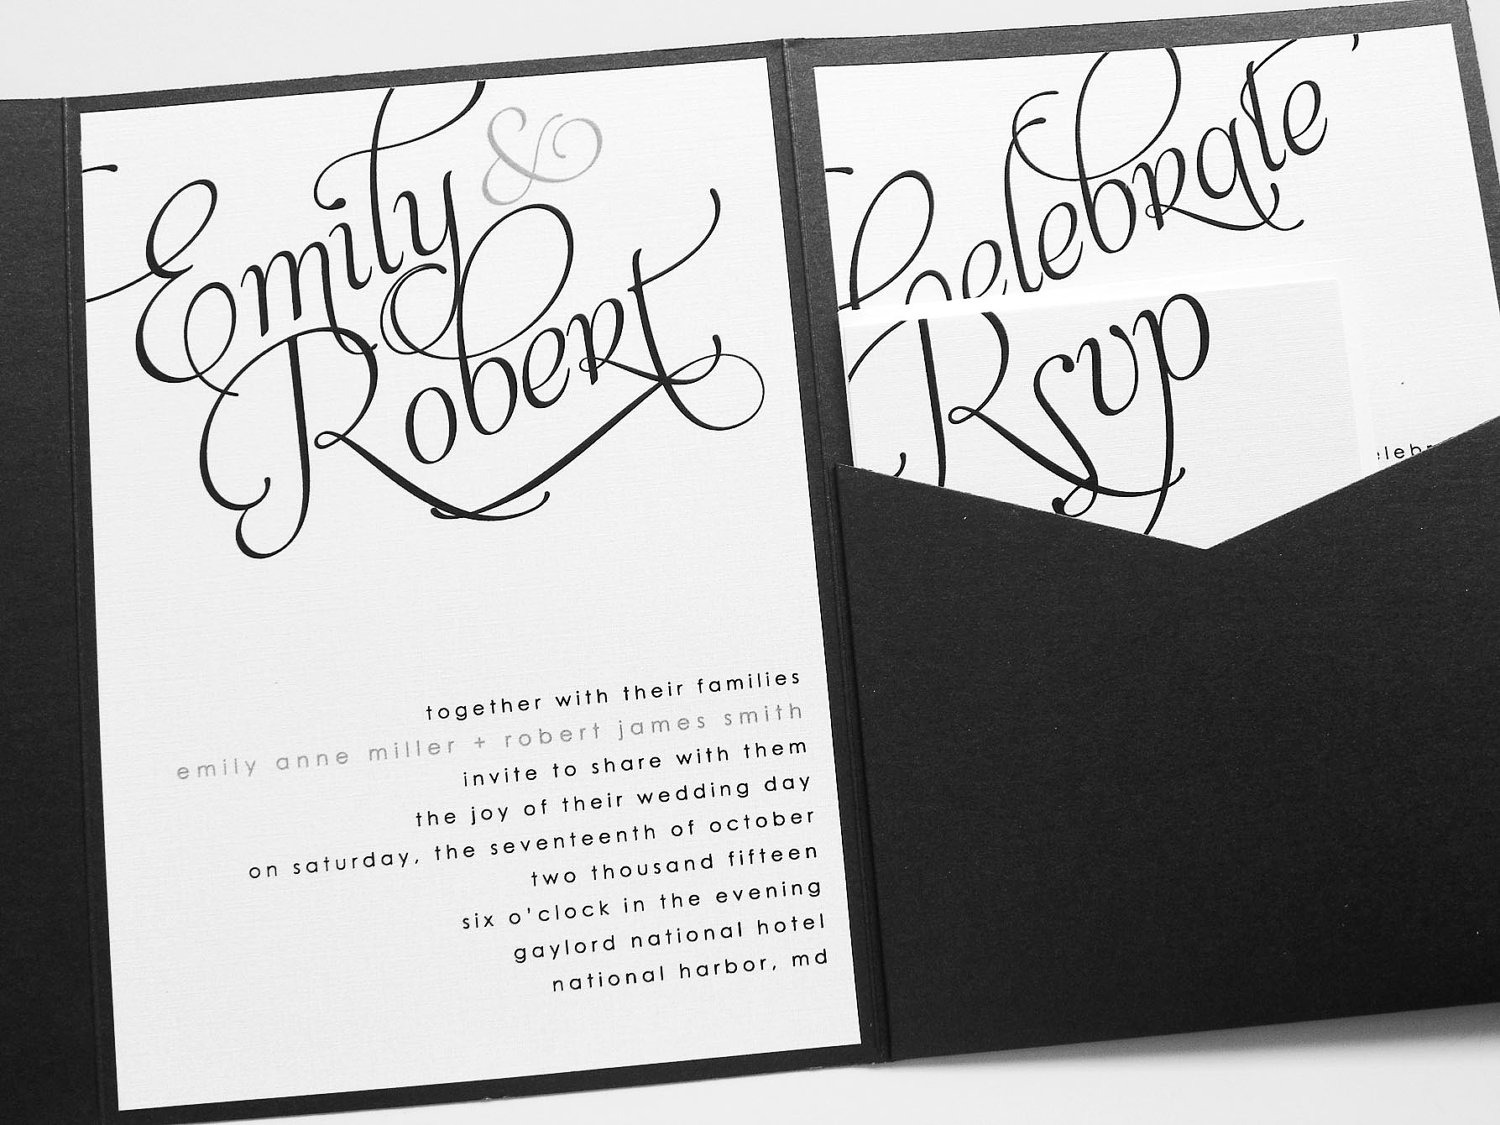 Wedding Invitation font the font on the top half of the ima